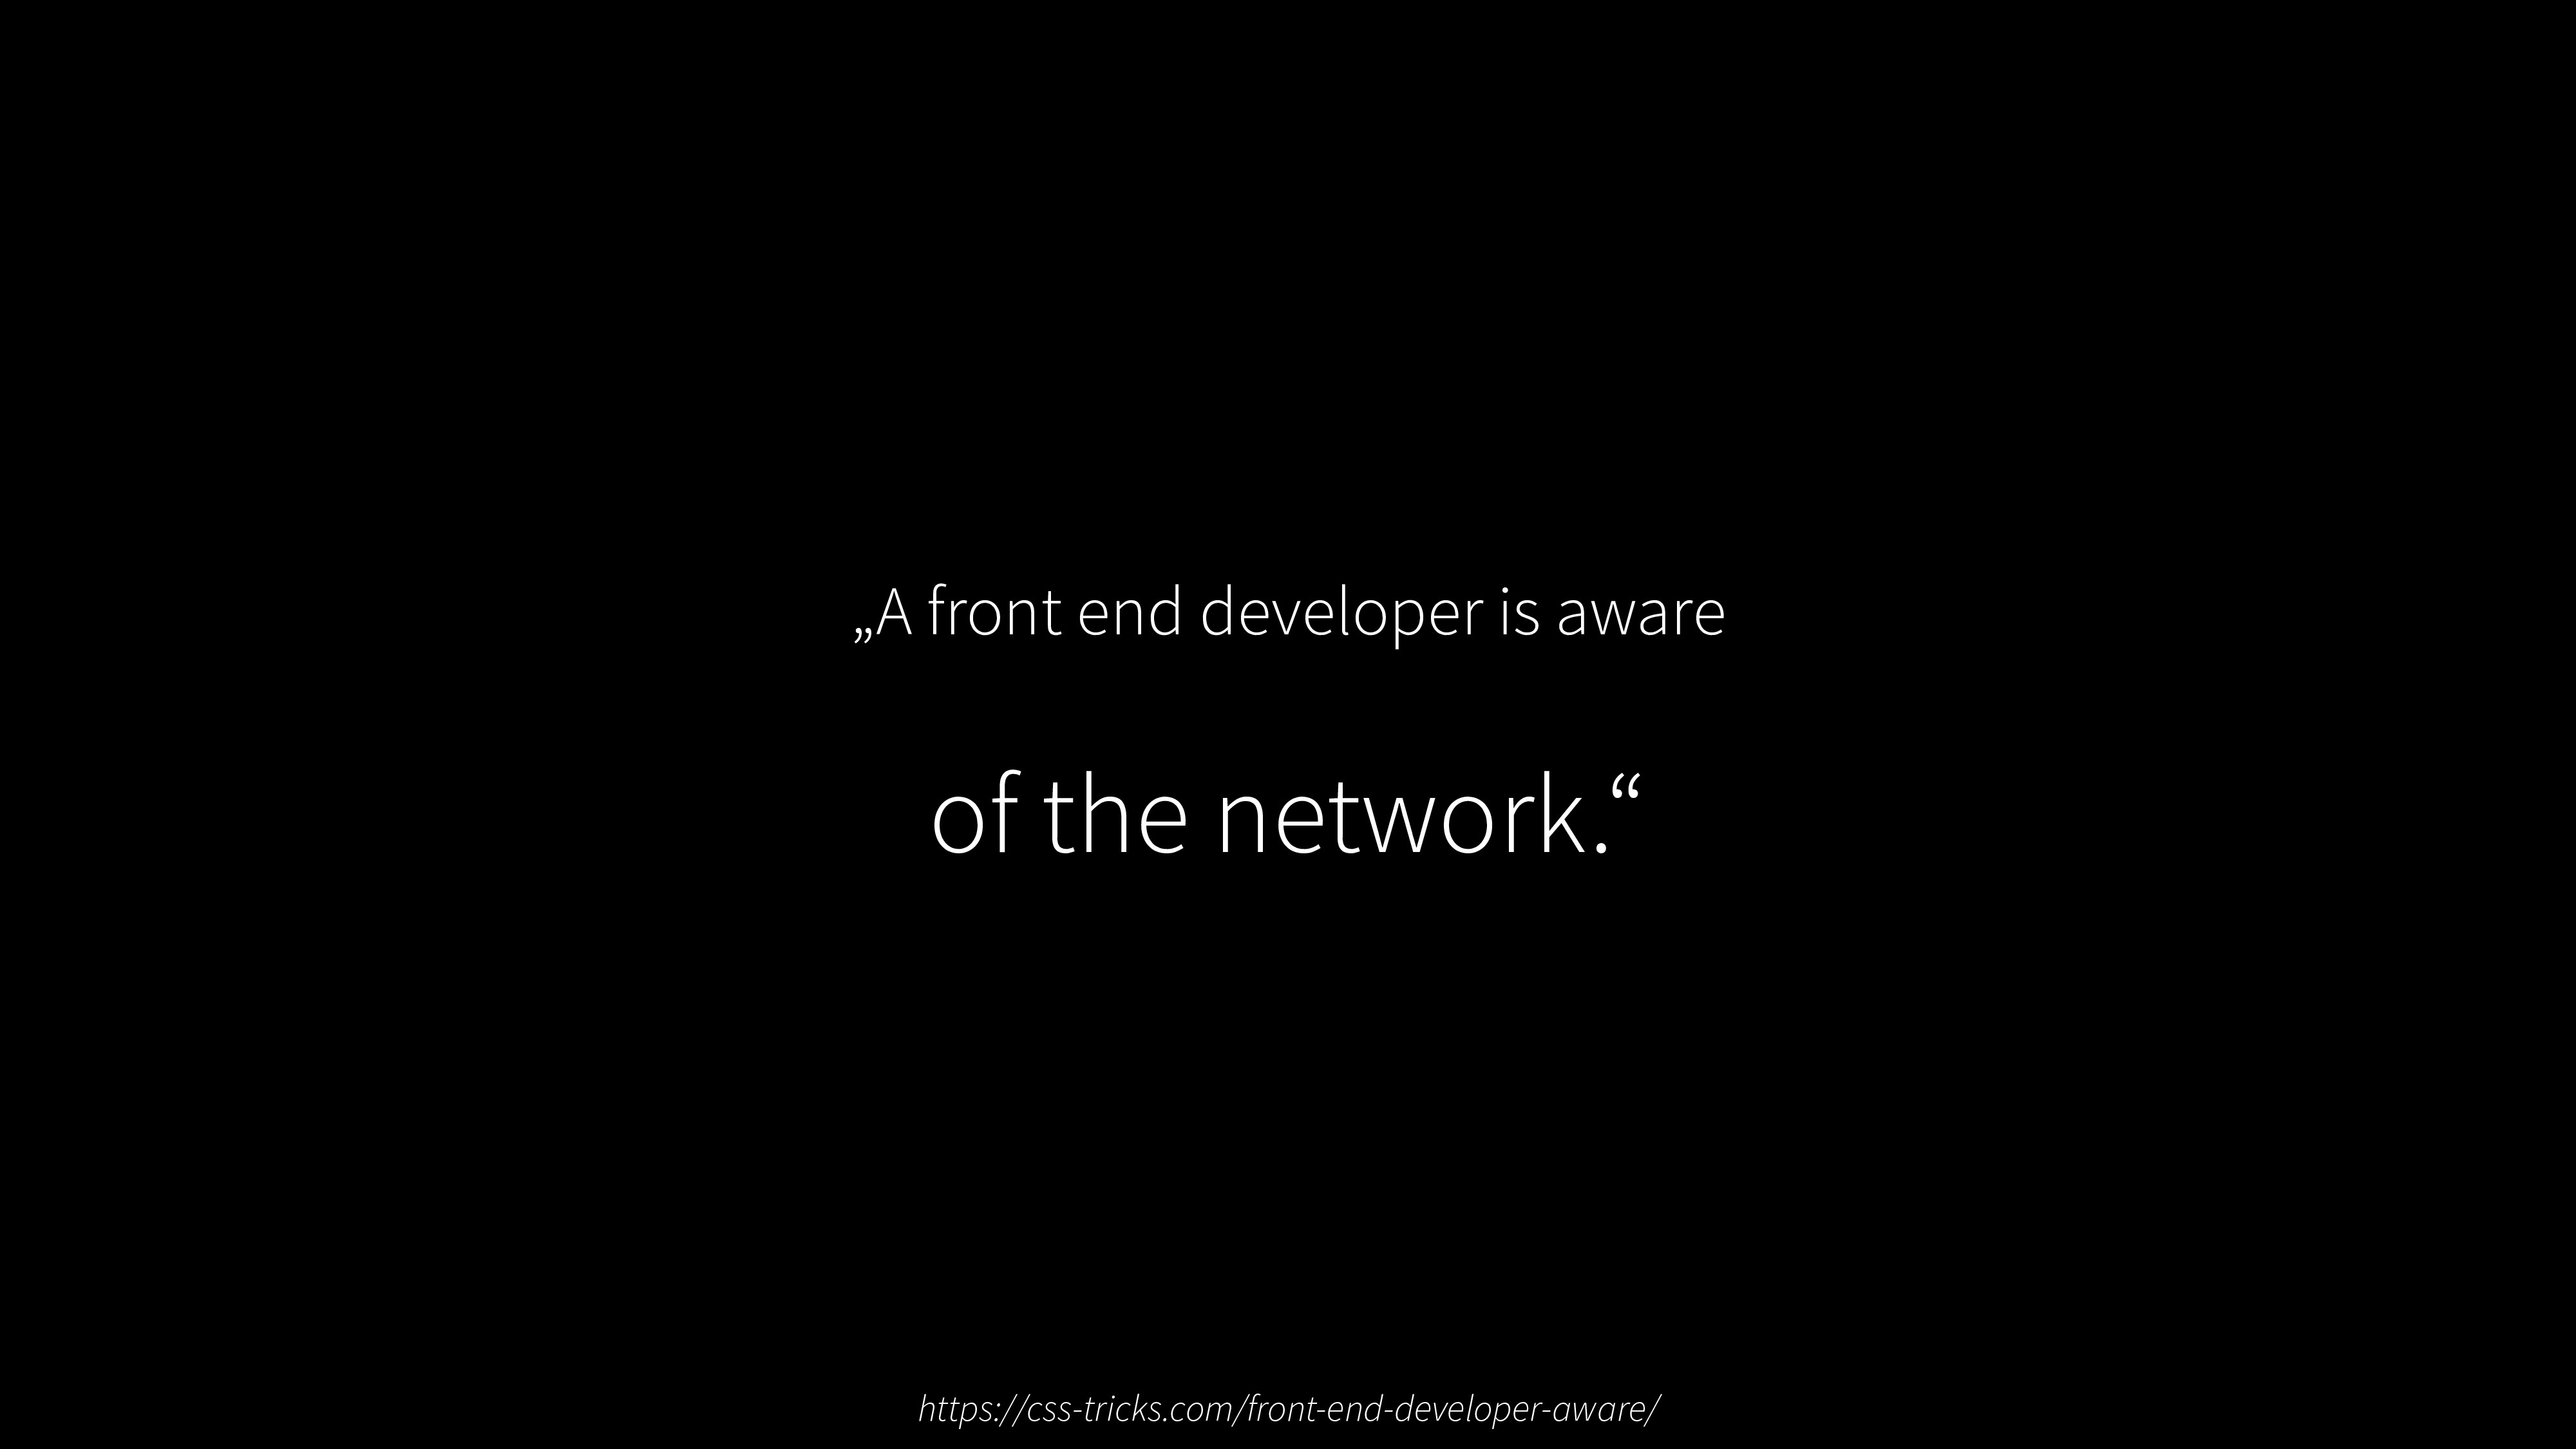 """A front end developer is aware of the network...."